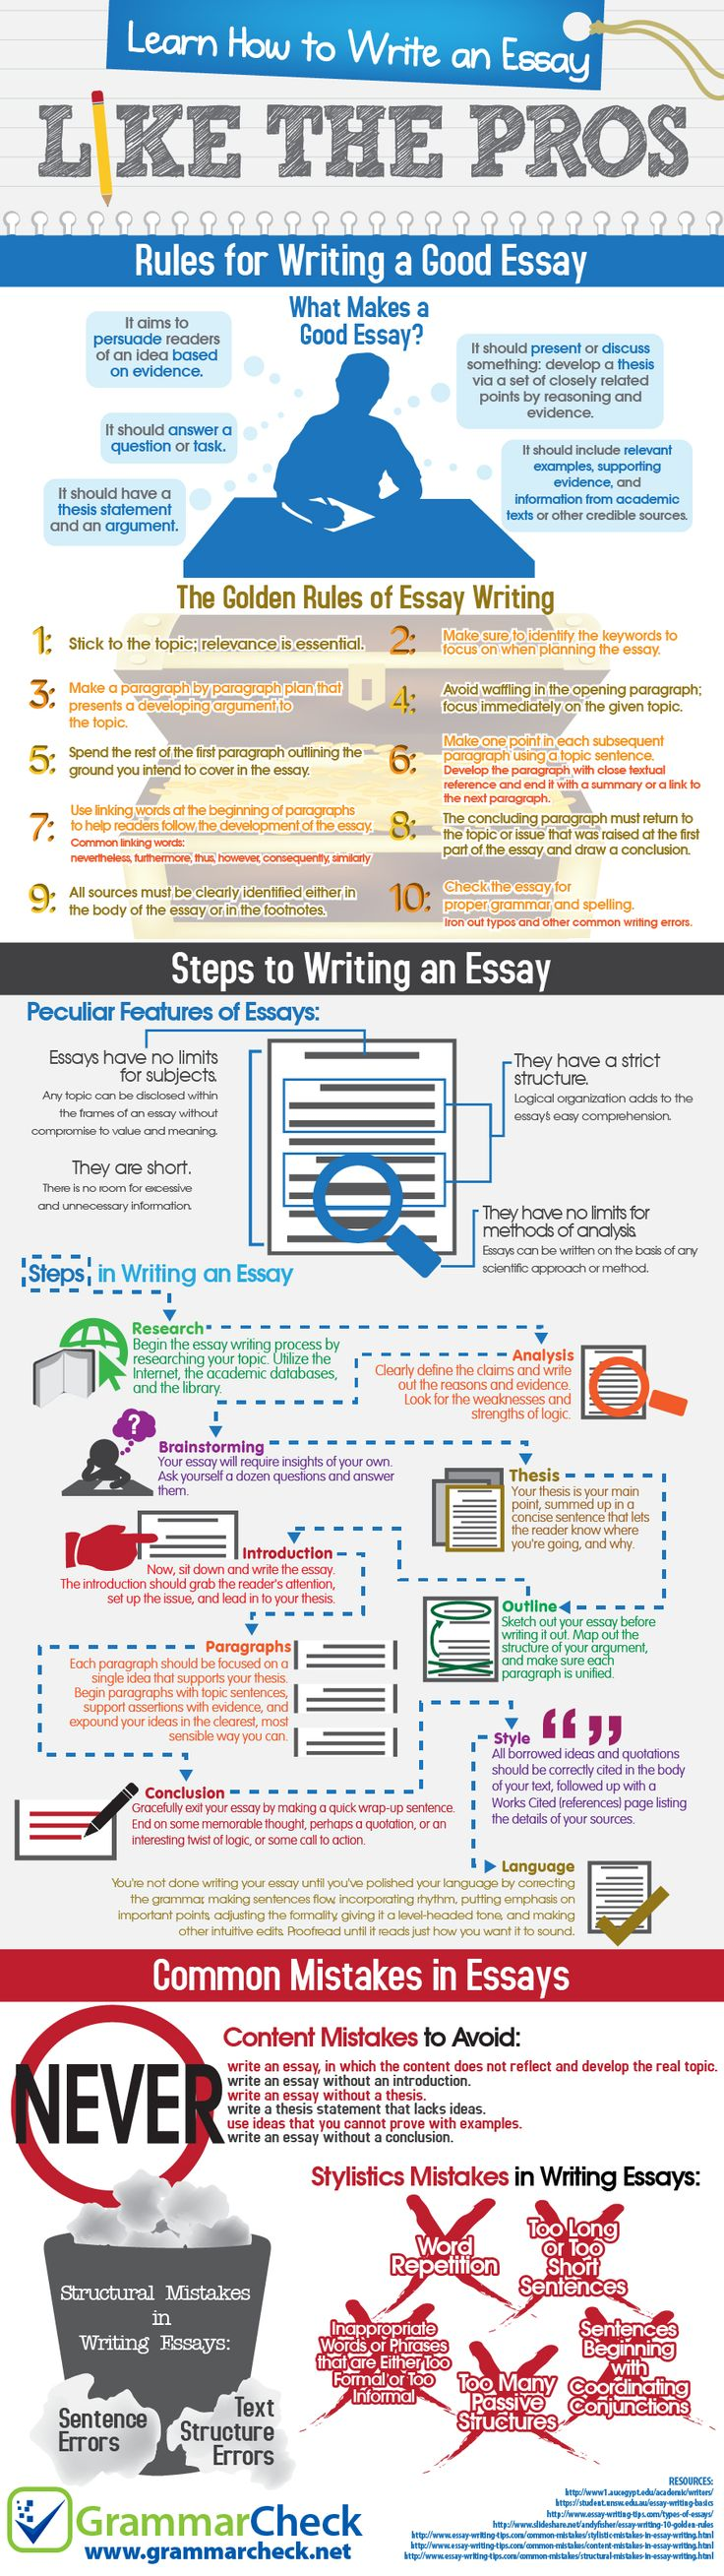 I want to write essays can u suggest a site?